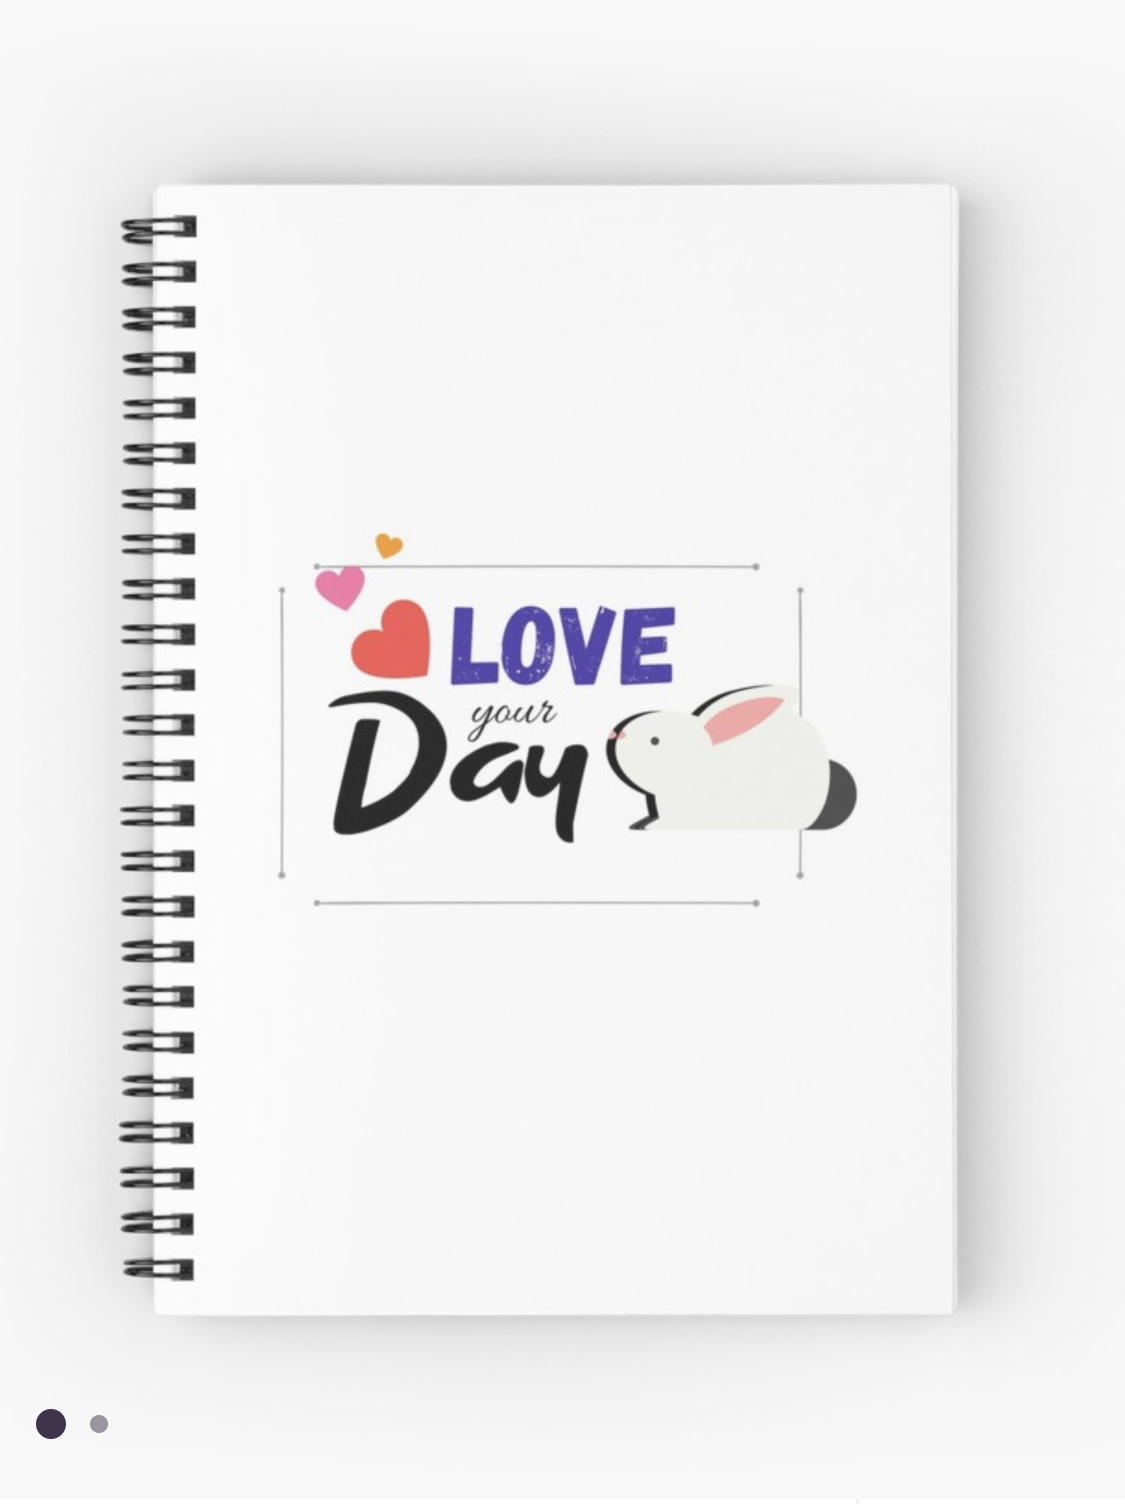 Love your day Notebook!